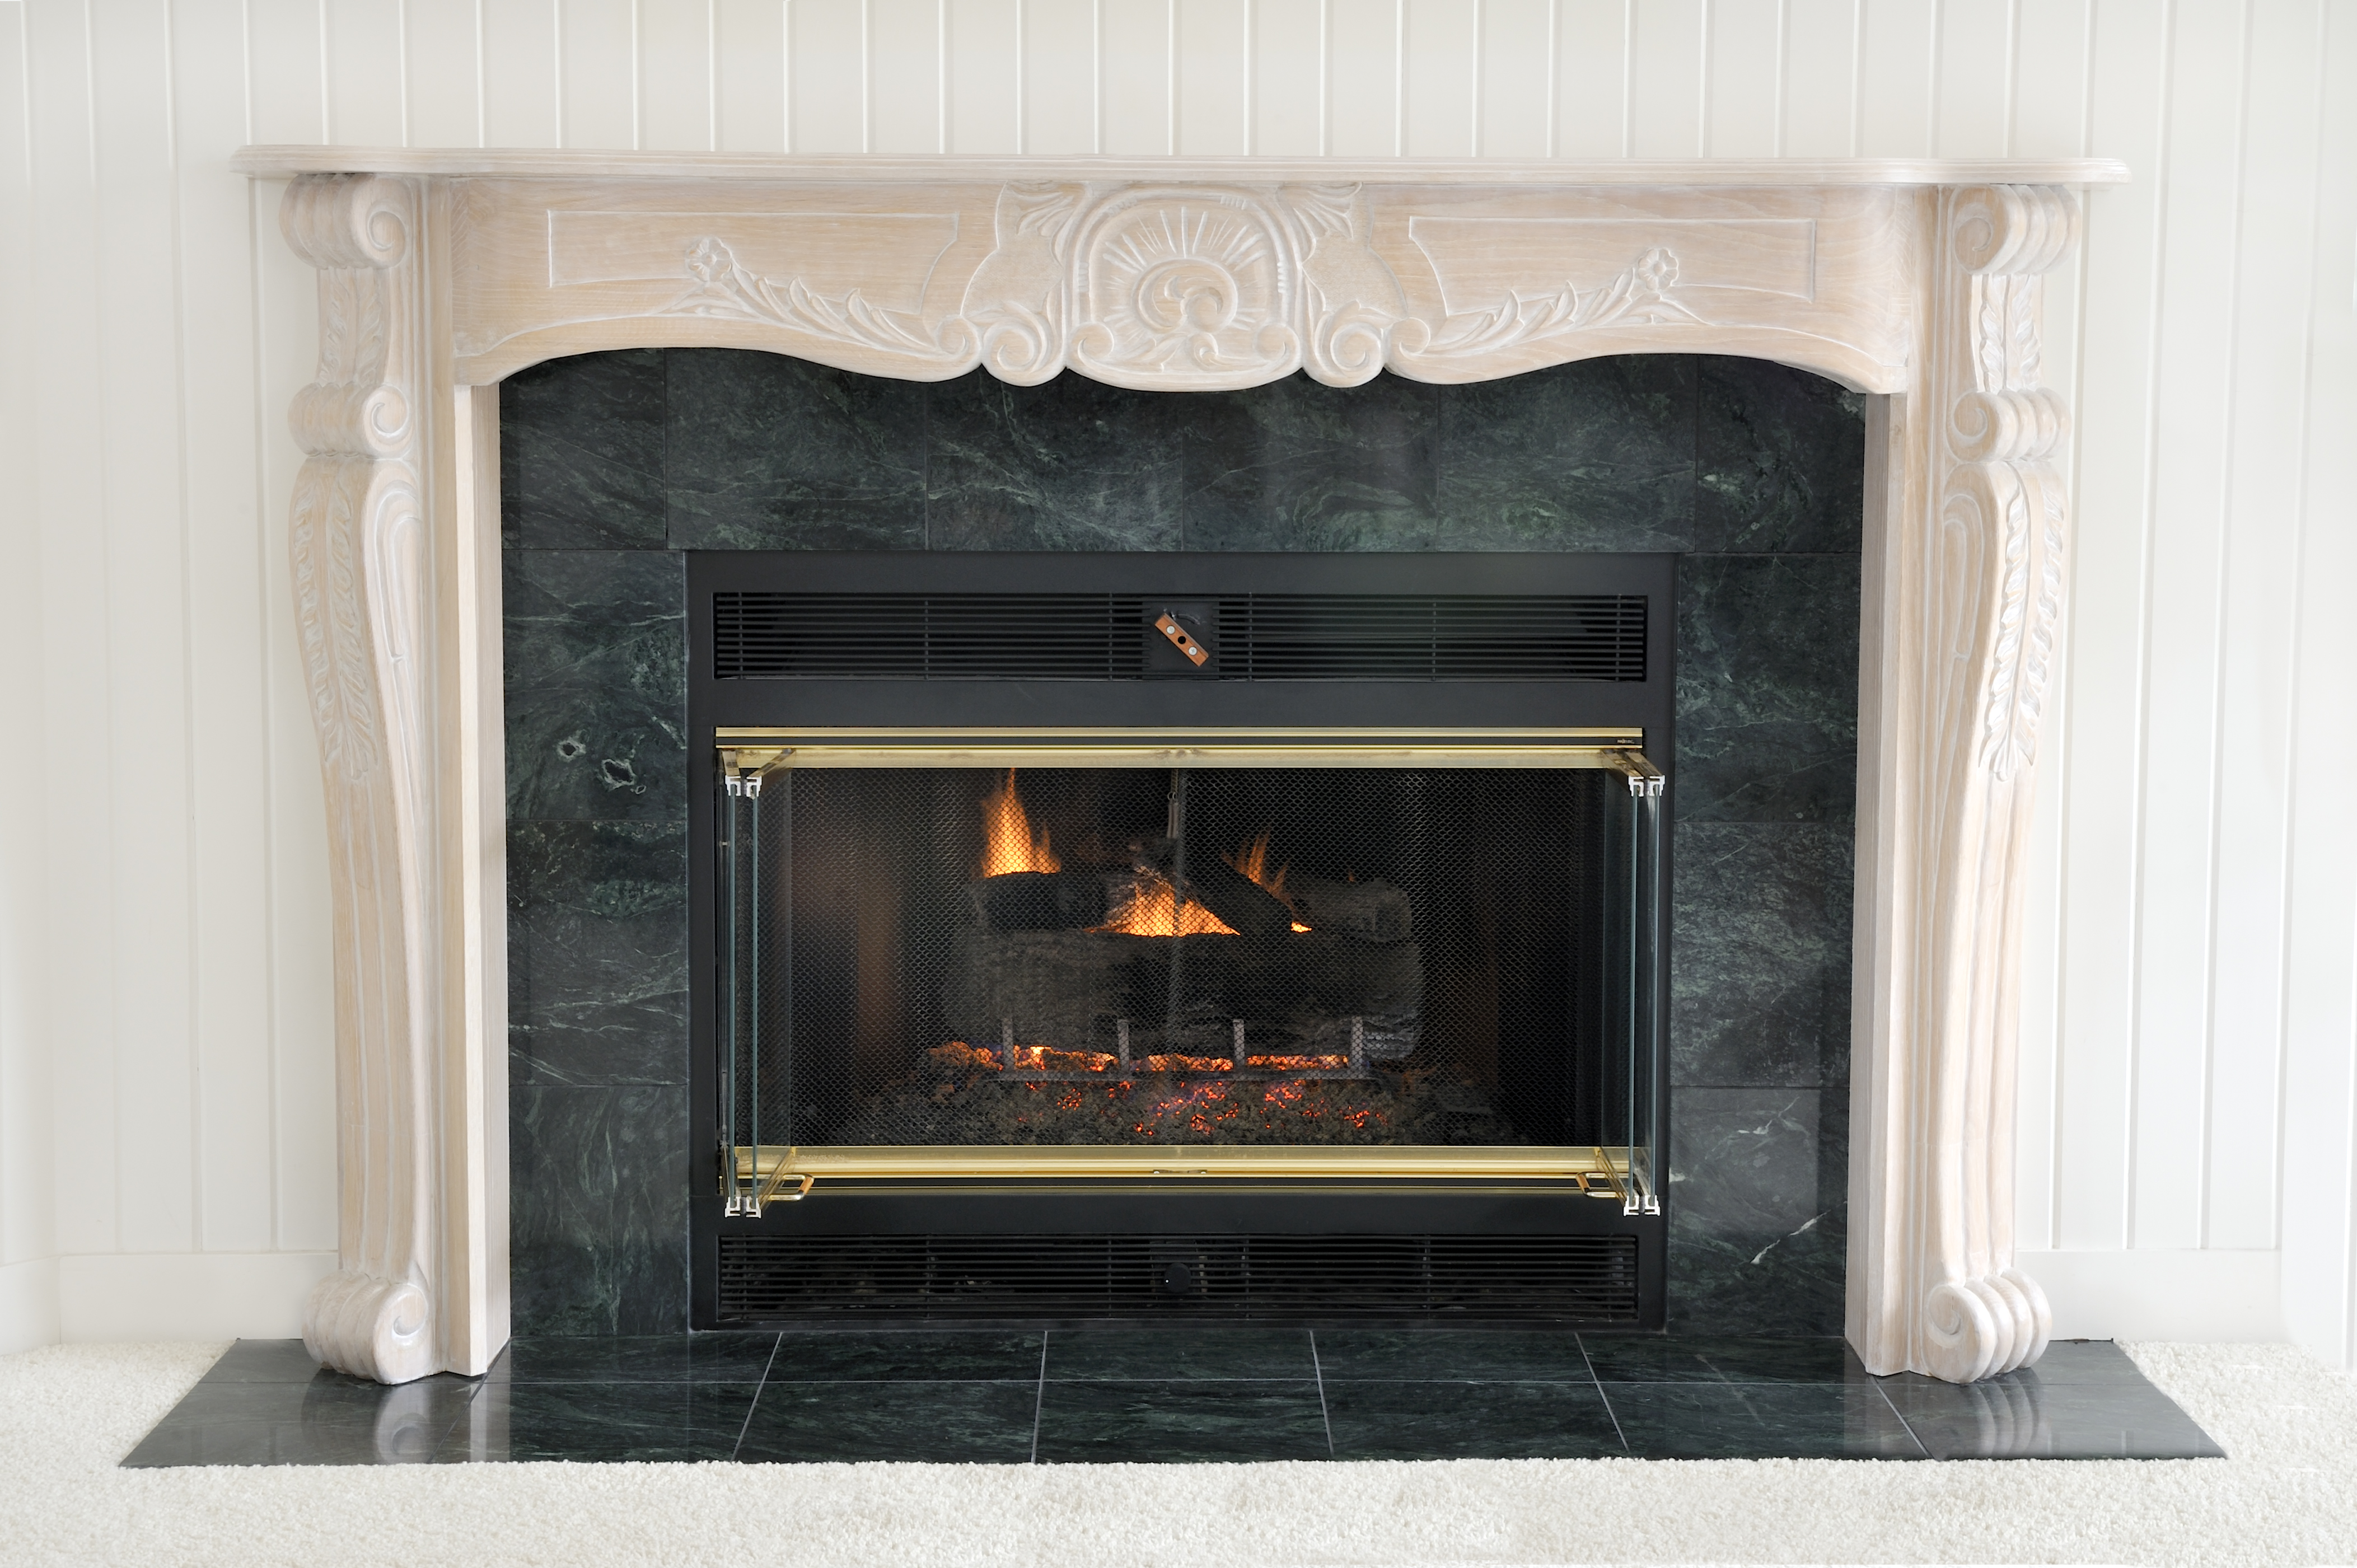 How to Tile Over a Marble Fireplace | Hunker